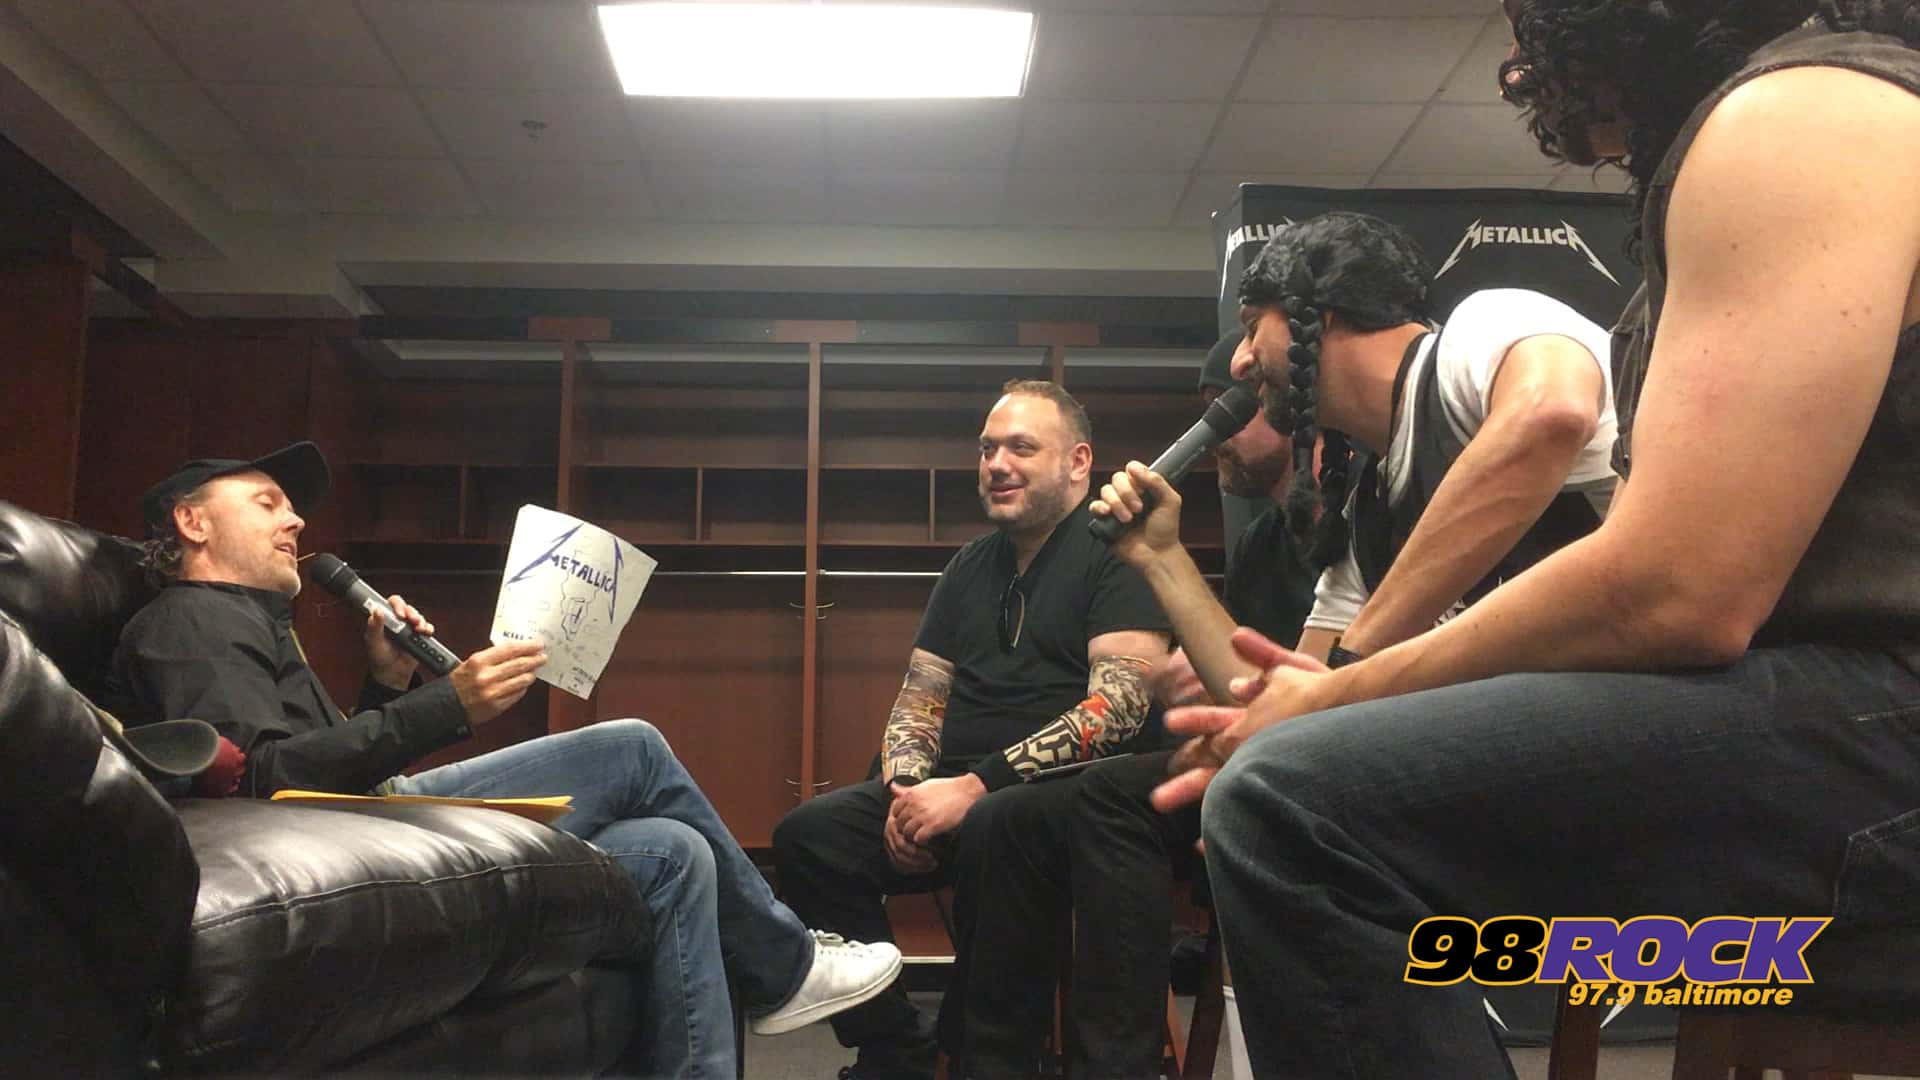 Spiegel 24 Interview Lars Of Metallica With Justin Scott And Spiegel